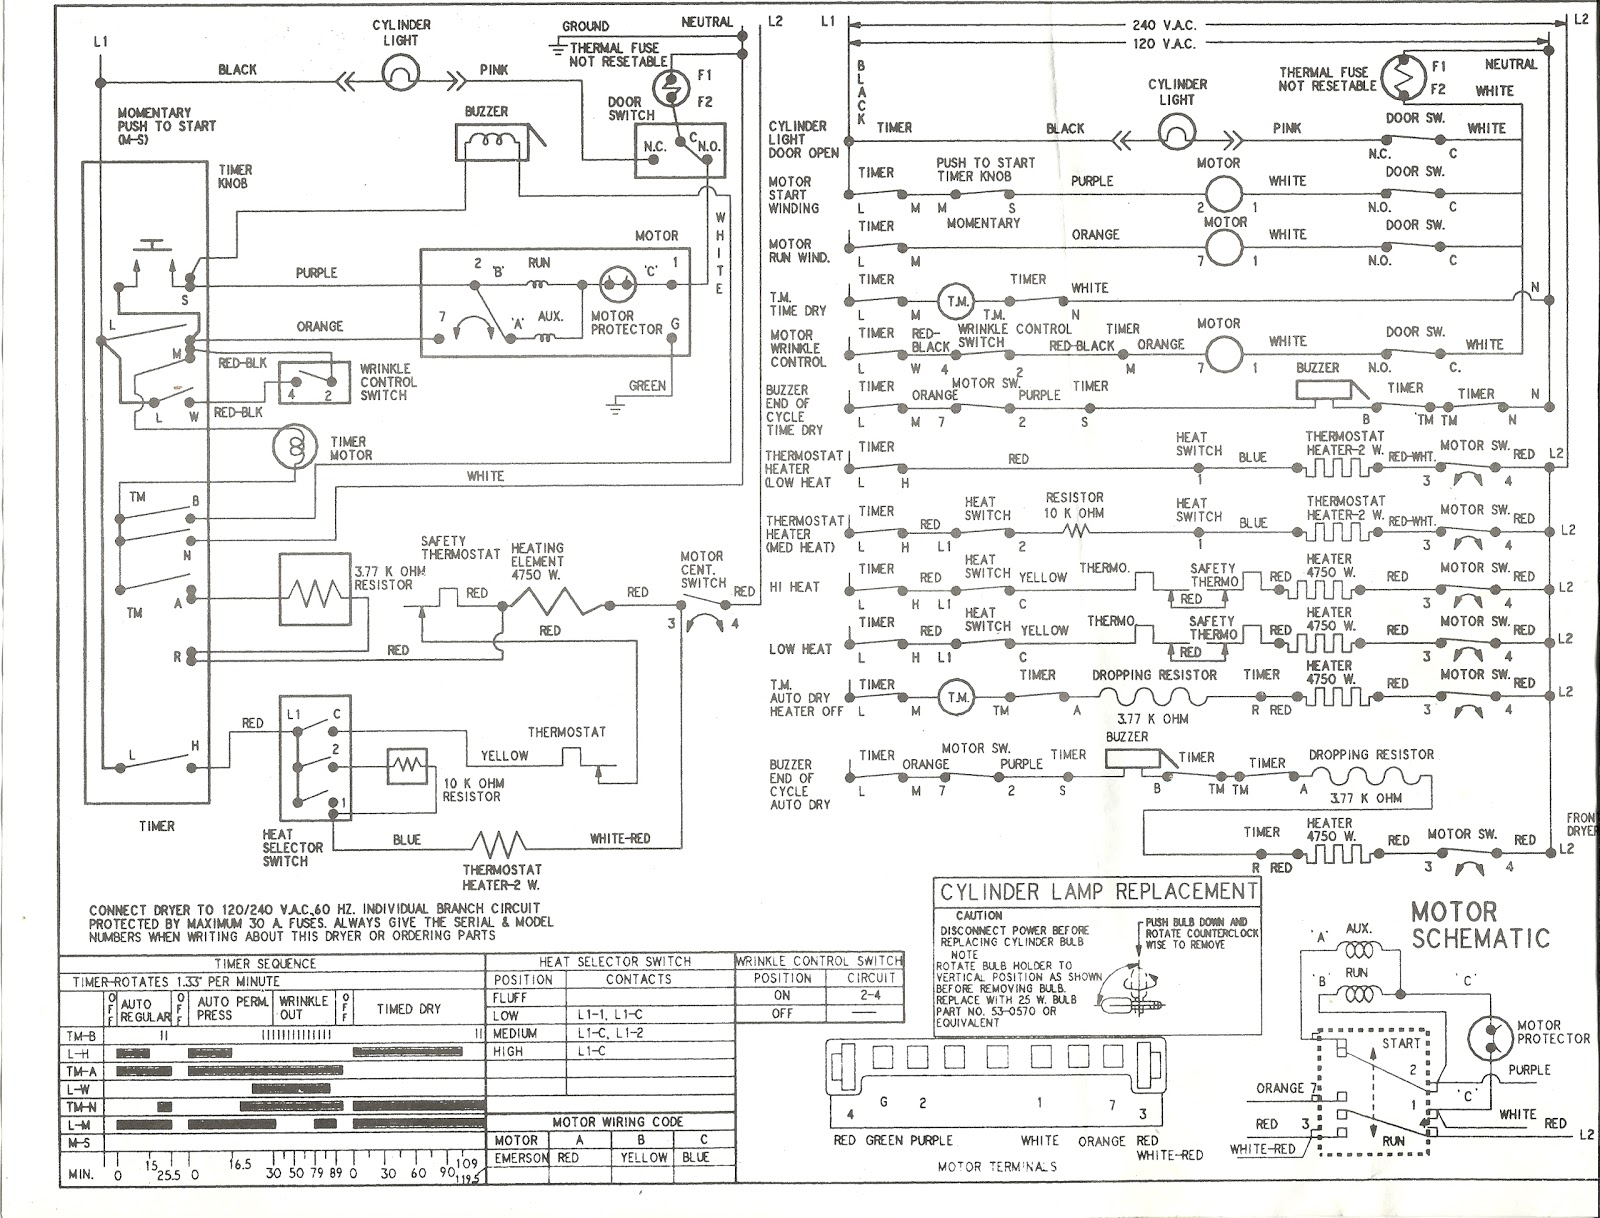 Wiring Diagram For Ge Oven Model Number Jckp16gs-1